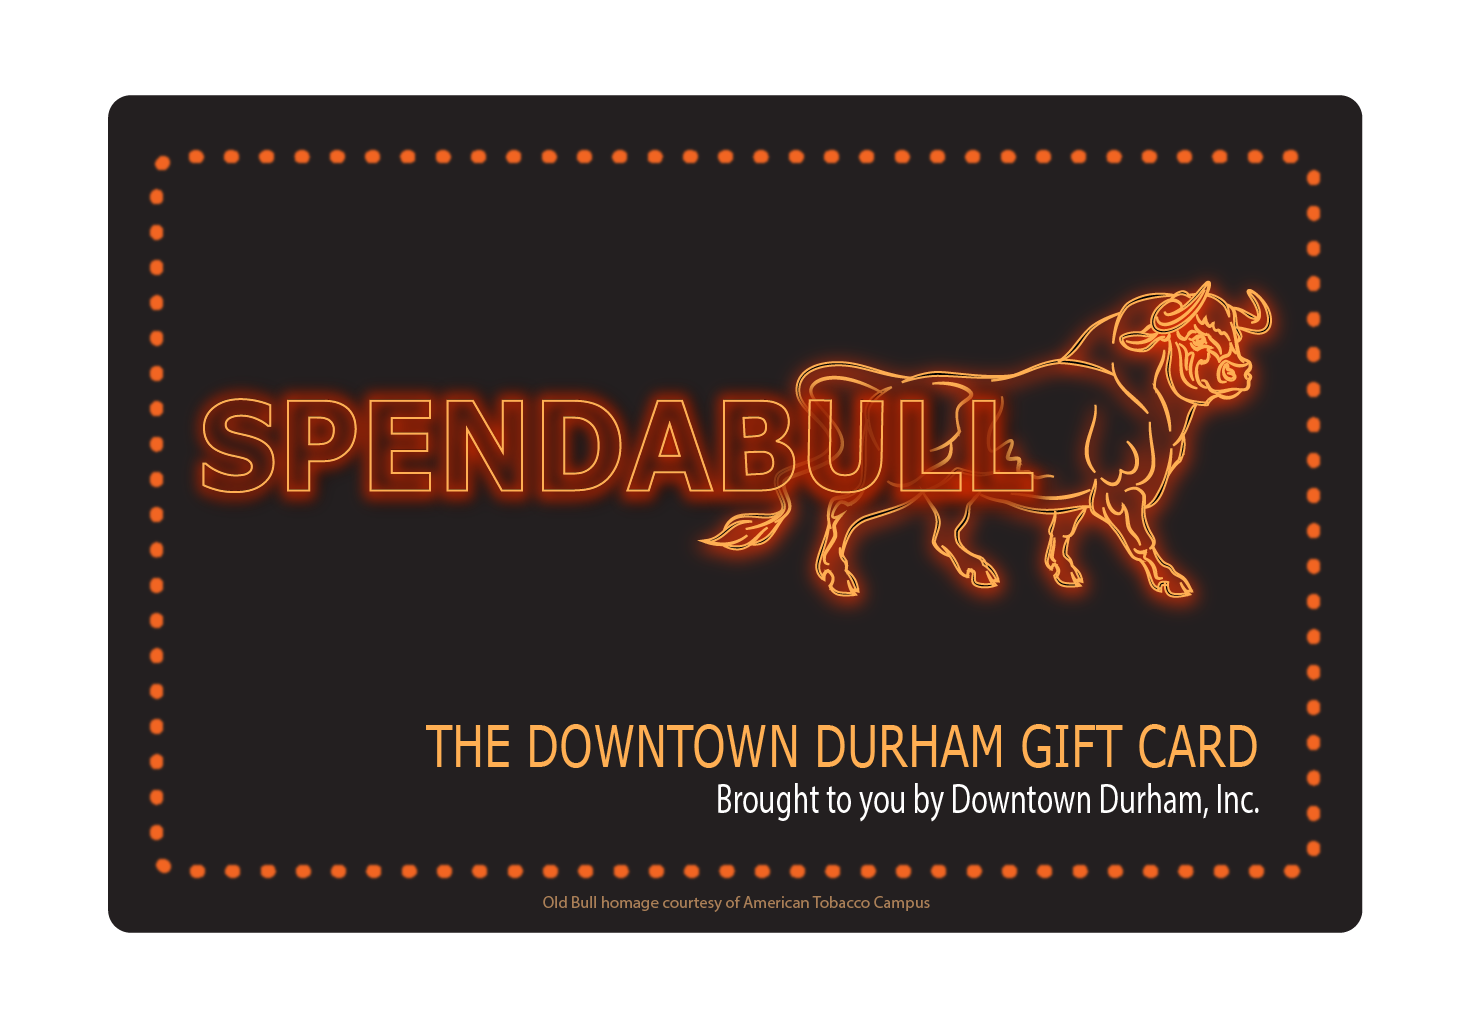 Try Spendabull • The Downtown Durham Gift Card